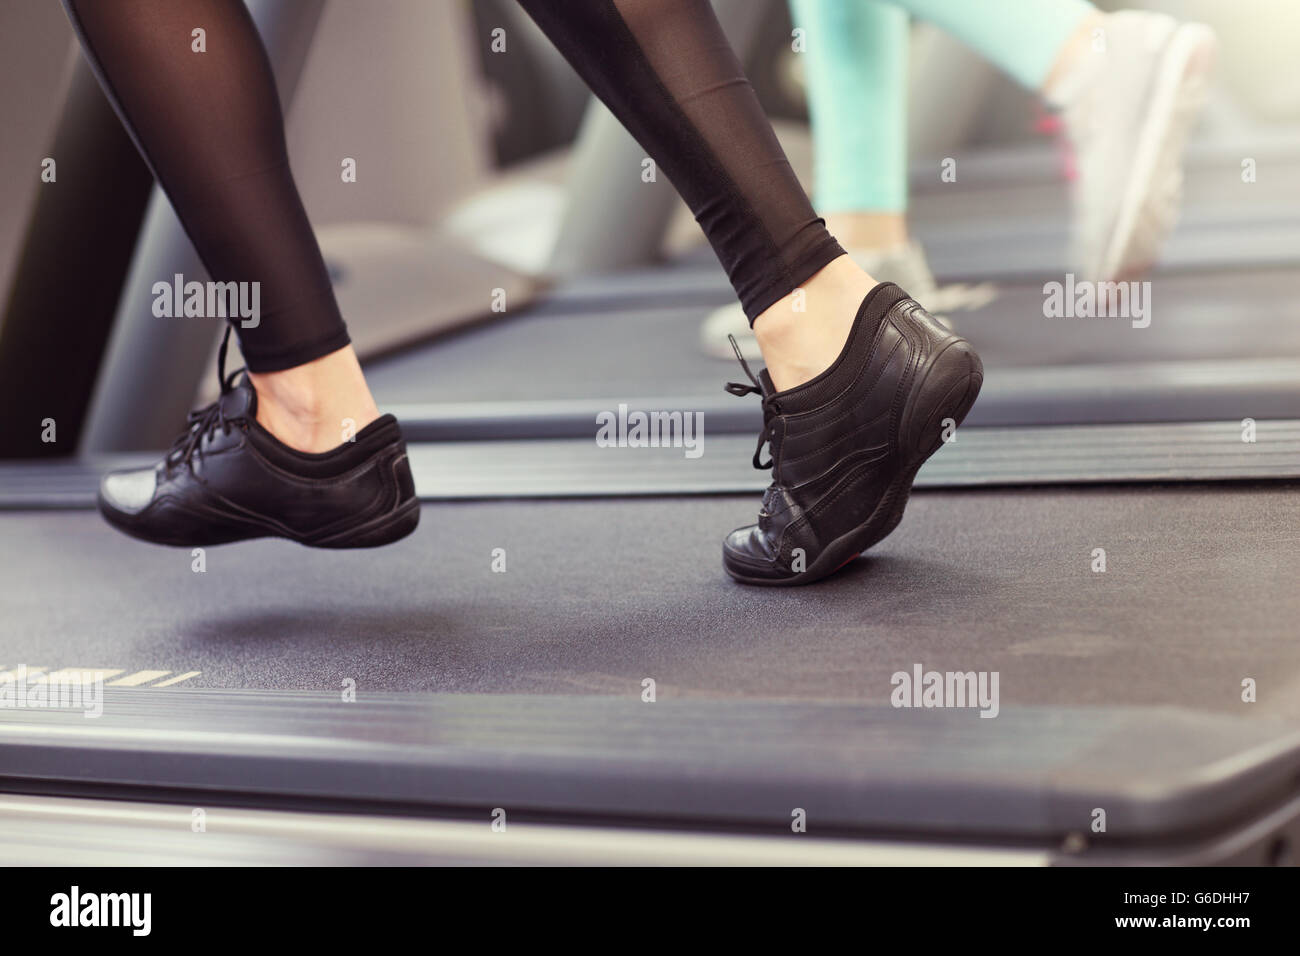 Close up of female legs on tredmill - Stock Image